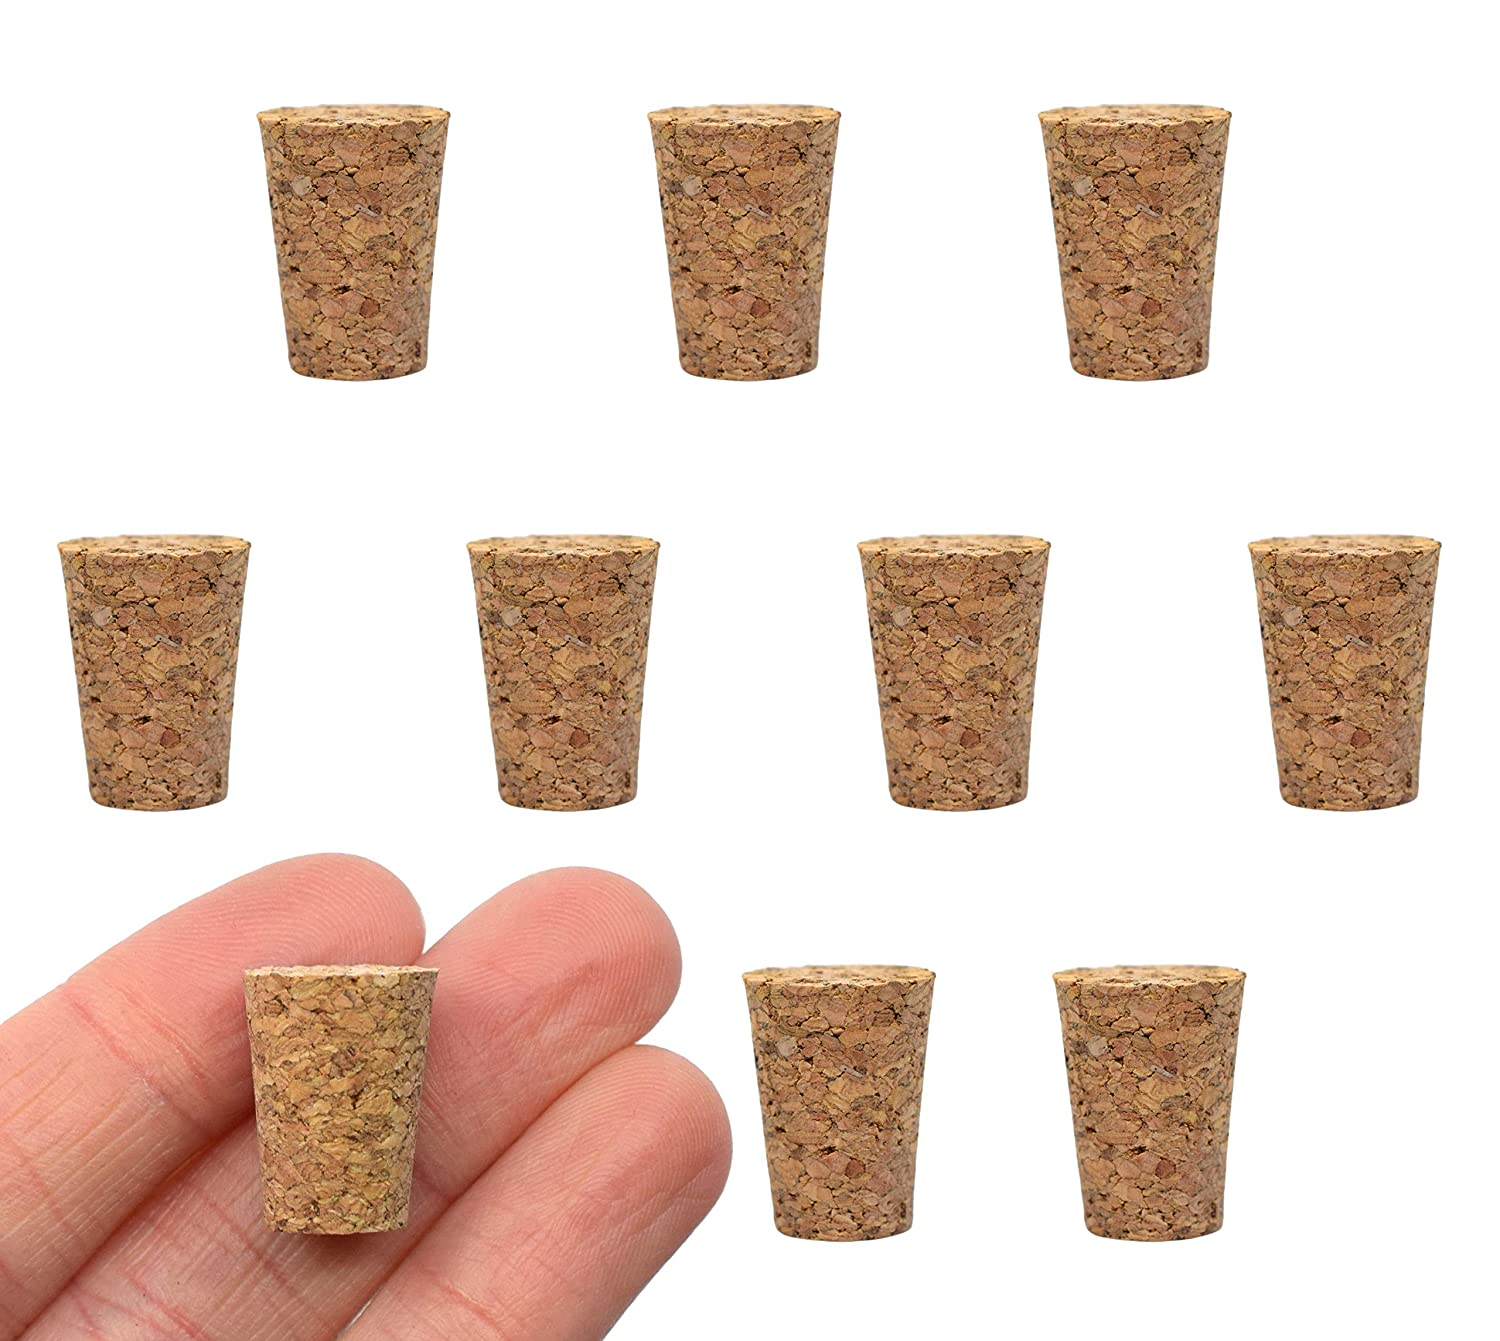 10PK Cork Stoppers Size #2-9mm Bottom 13mm Dallas Mall Be super welcome - Length Top 17mm